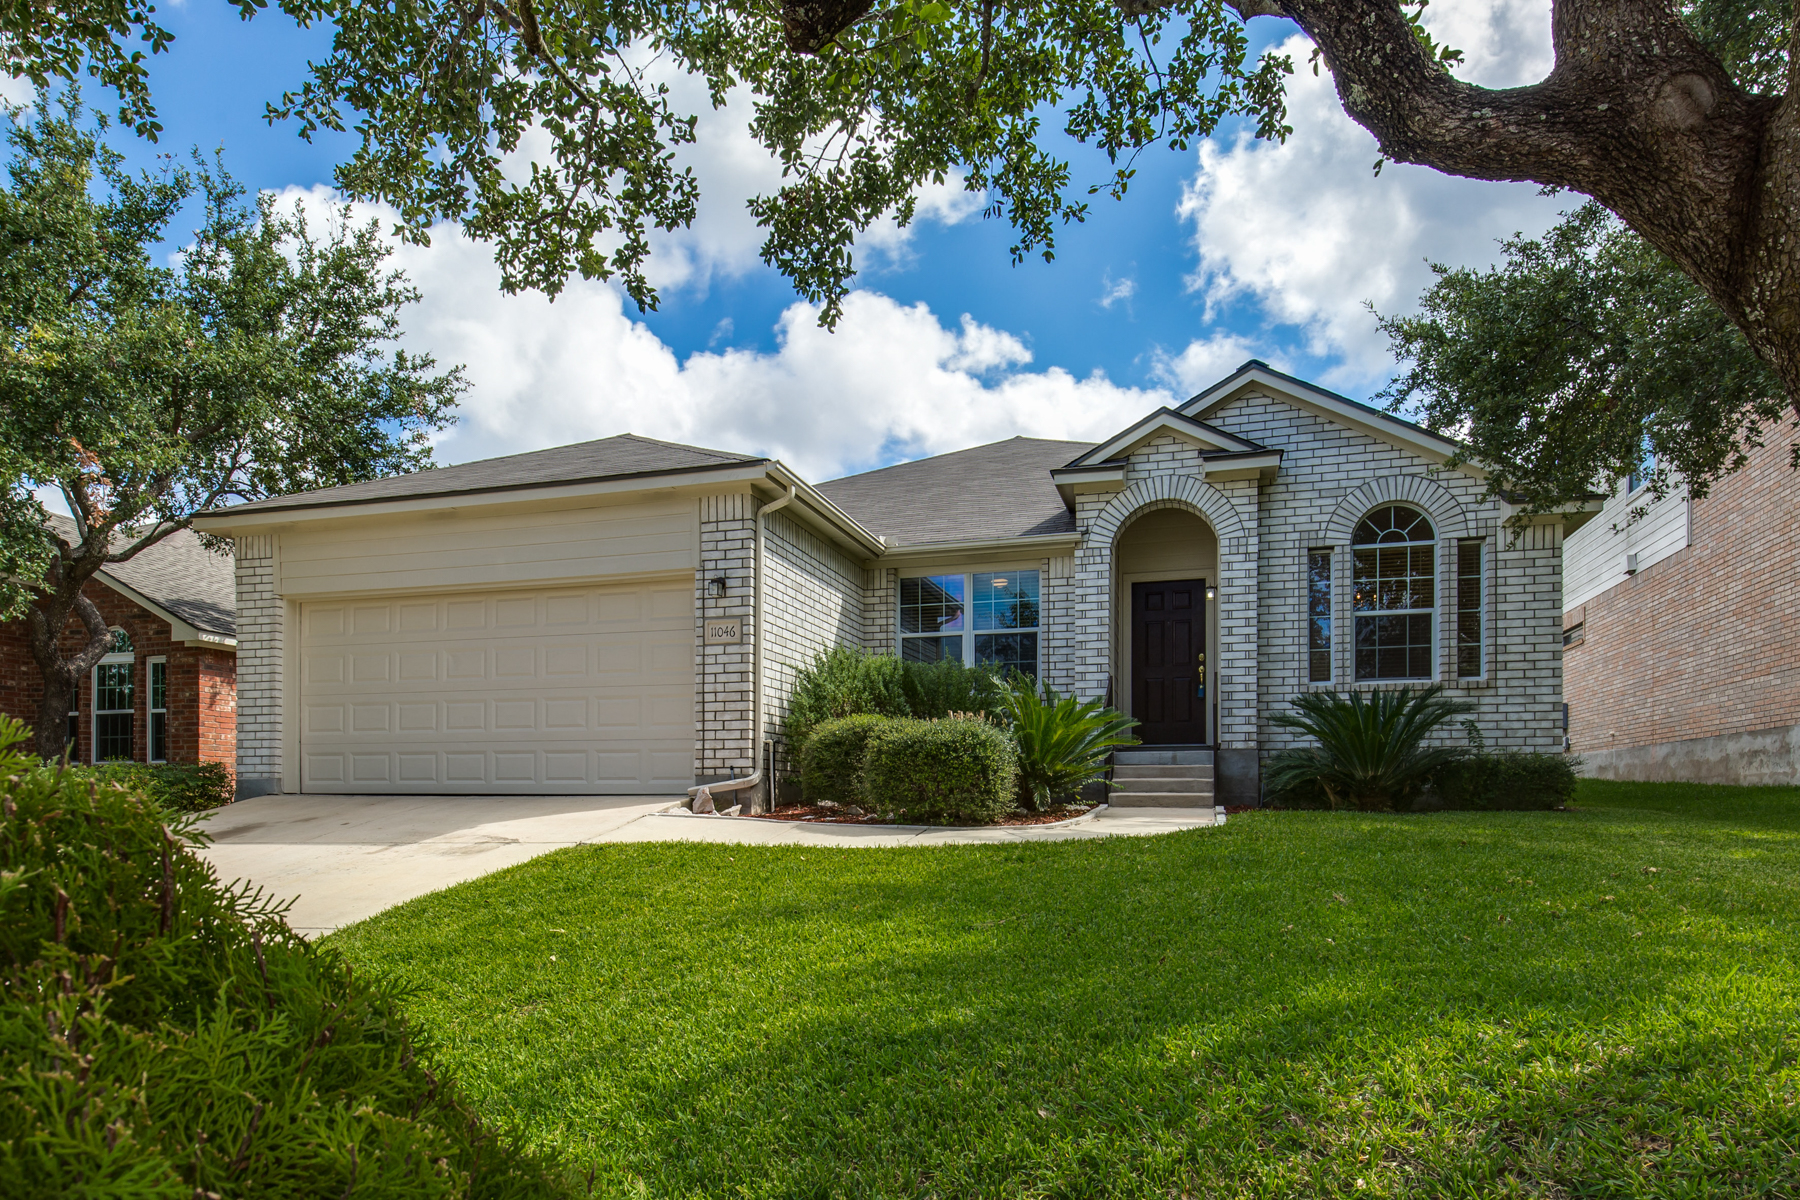 Single Family Home for Sale at Beautiful One-Story Home in Creekview Estates 11046 Wilson Oaks San Antonio, Texas 78249 United States